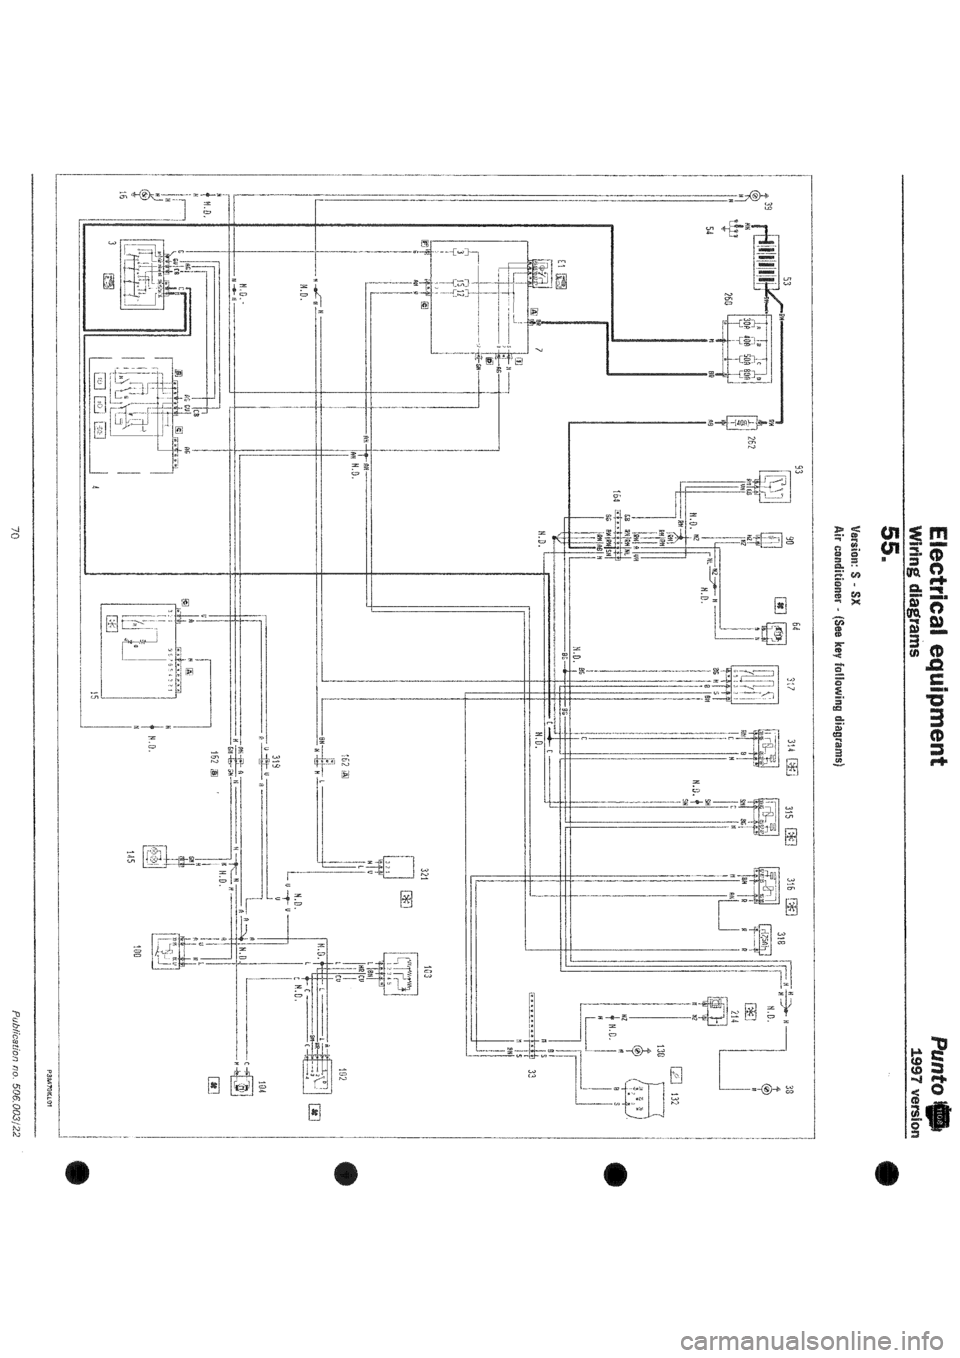 medium resolution of fiat ducato van wiring diagram